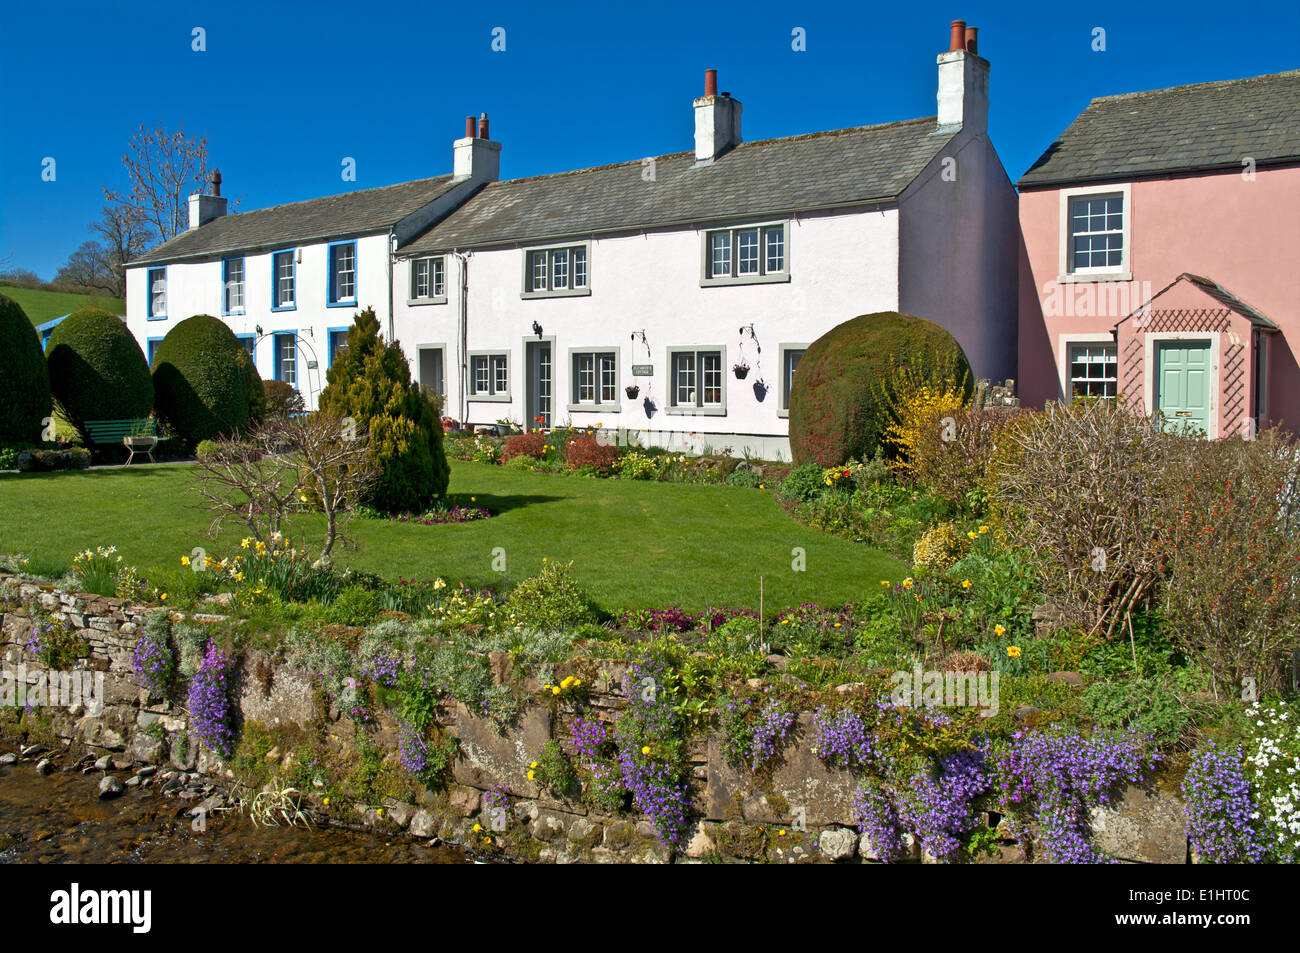 Stock Photo   Traditional Old Painted Cottages With Pretty Gardens In The  Village Of Caldbeck, Cumbria, Lake District National Park England Uk